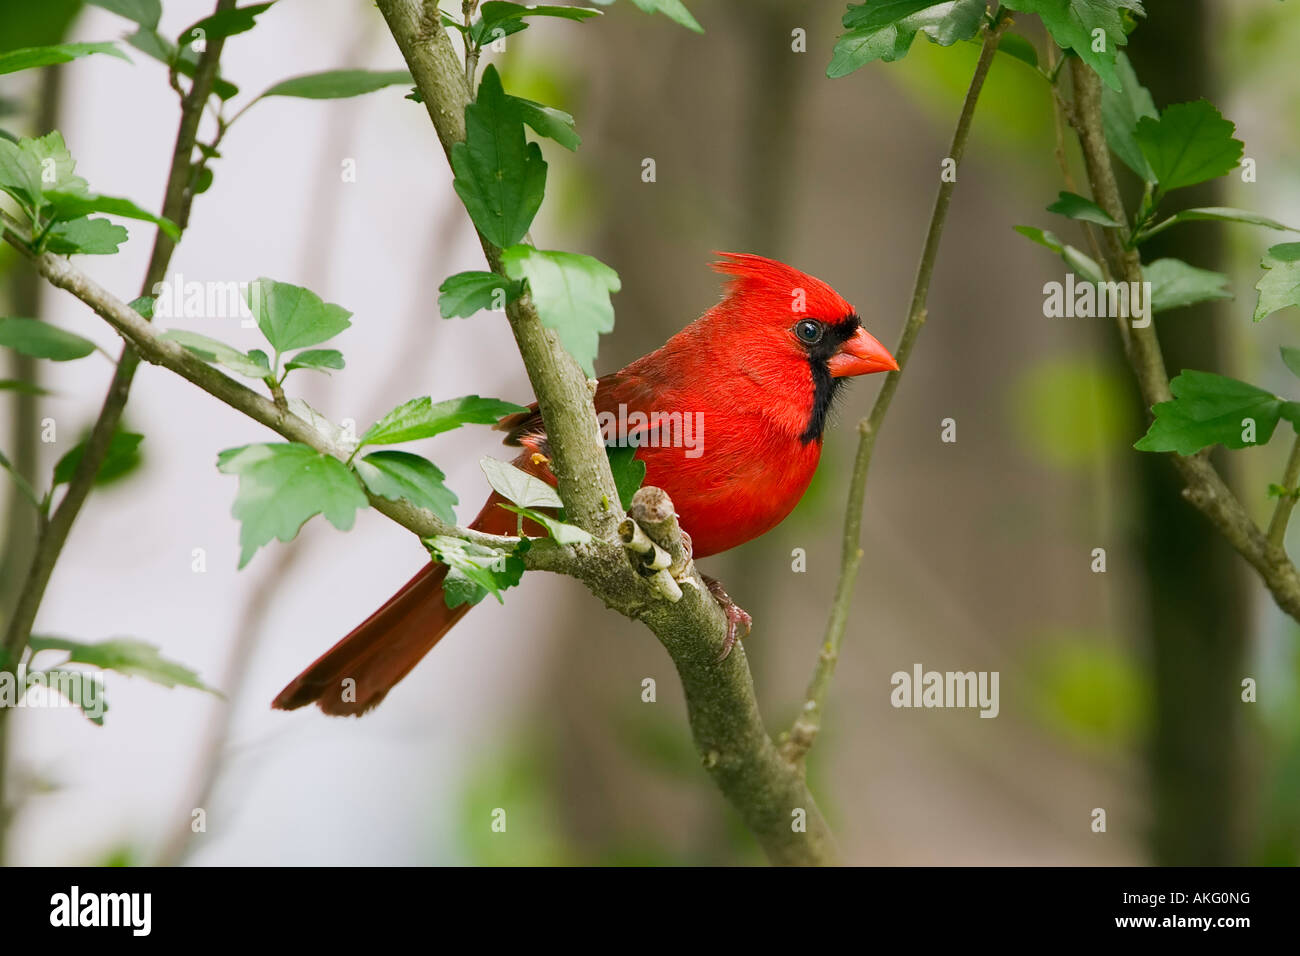 North American Cardinal (Male) on Tree Branch - Stock Image